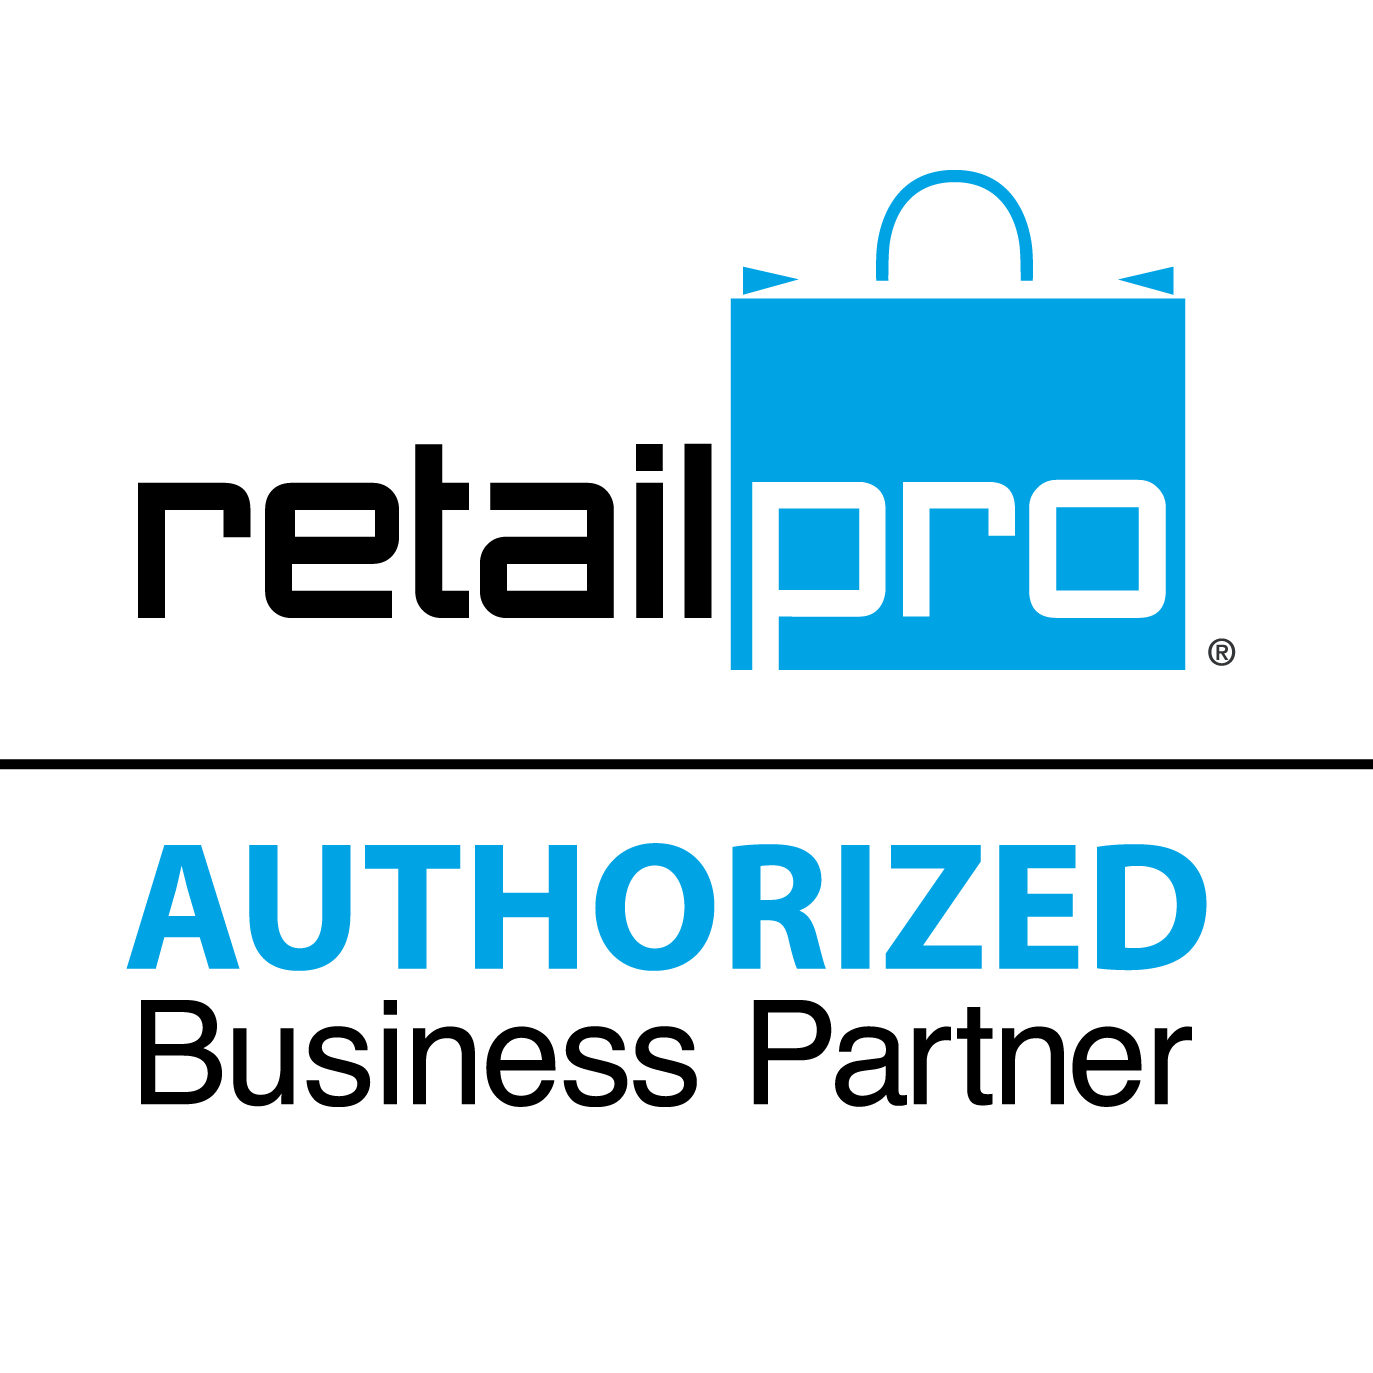 Retail Pro Business Partner  - channel sig BP ver 1 - Home